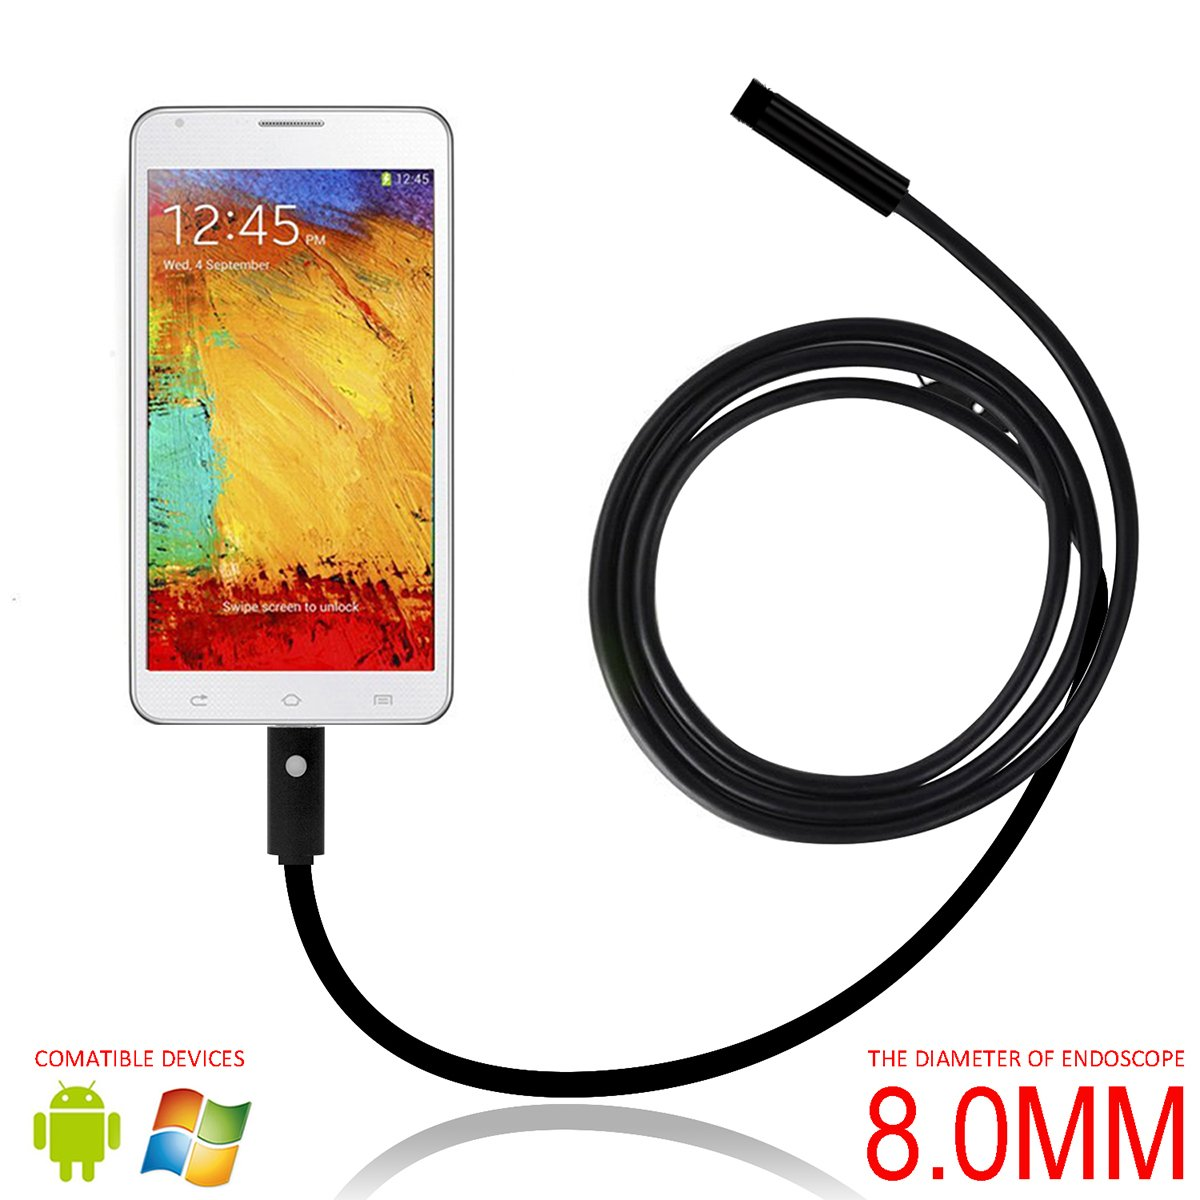 Yoolove USB Android Endoscope 2 IN 1 IP67 Waterproof Snake Inspection Camera Tube Borescop with USB Adapter and 6LED Light for Samsung Computer Laptop PC Smartphones (8.0mm)